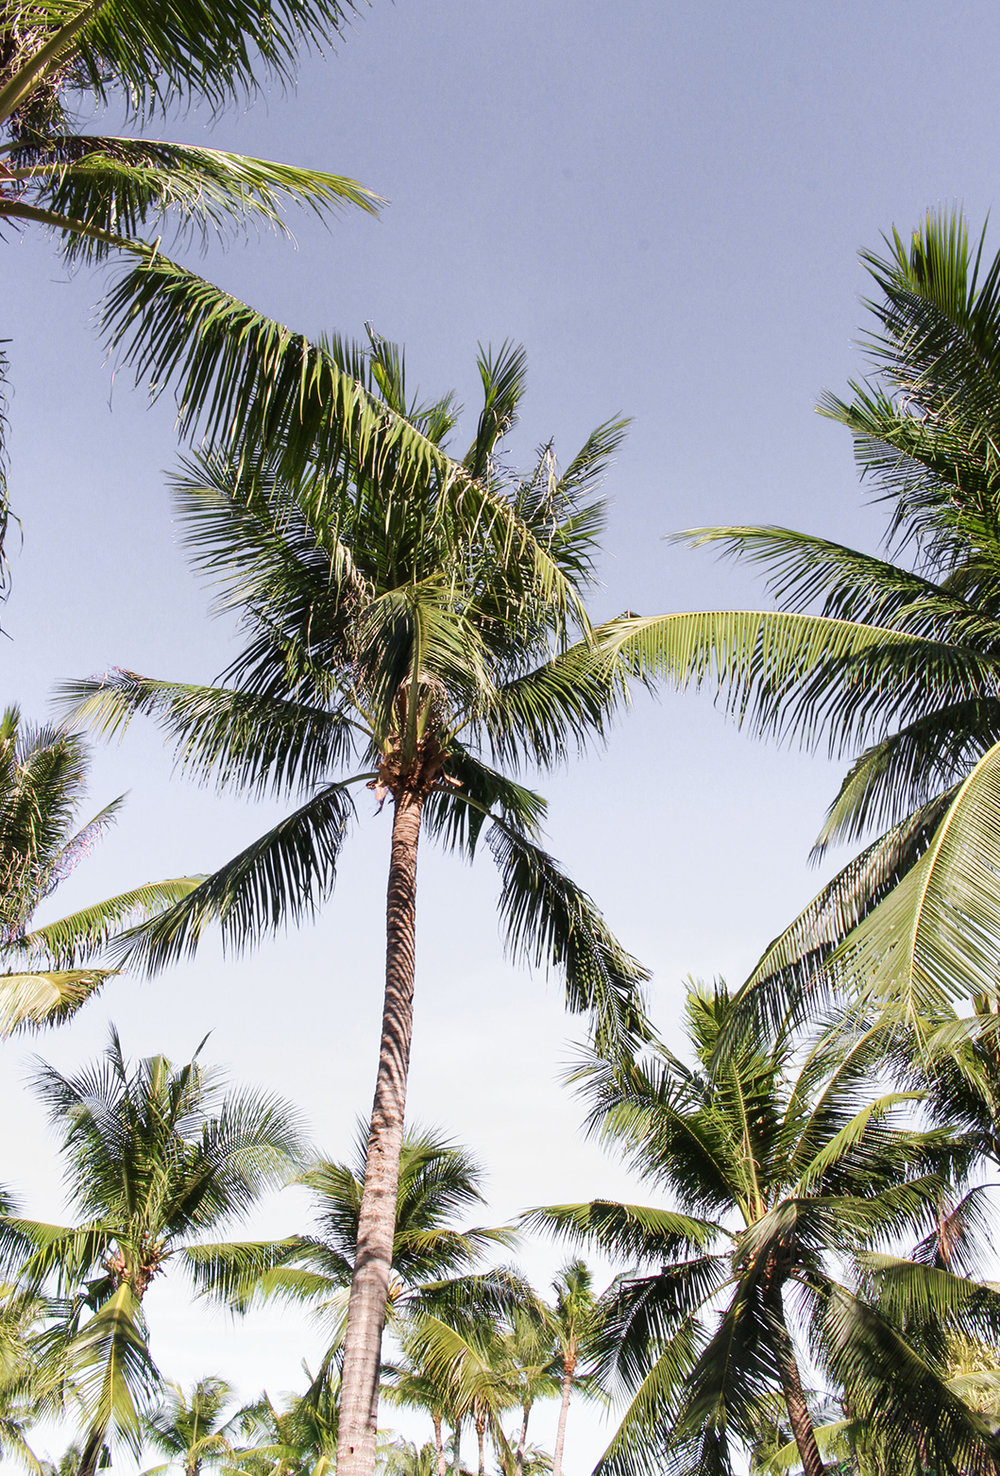 Tropical_Coconut Trees-Beautiful-Islands-Cebu-Philippines_Travel_Tropical-Holiday-Best-Places_Trip_-Hello-Miss-May-.jpg